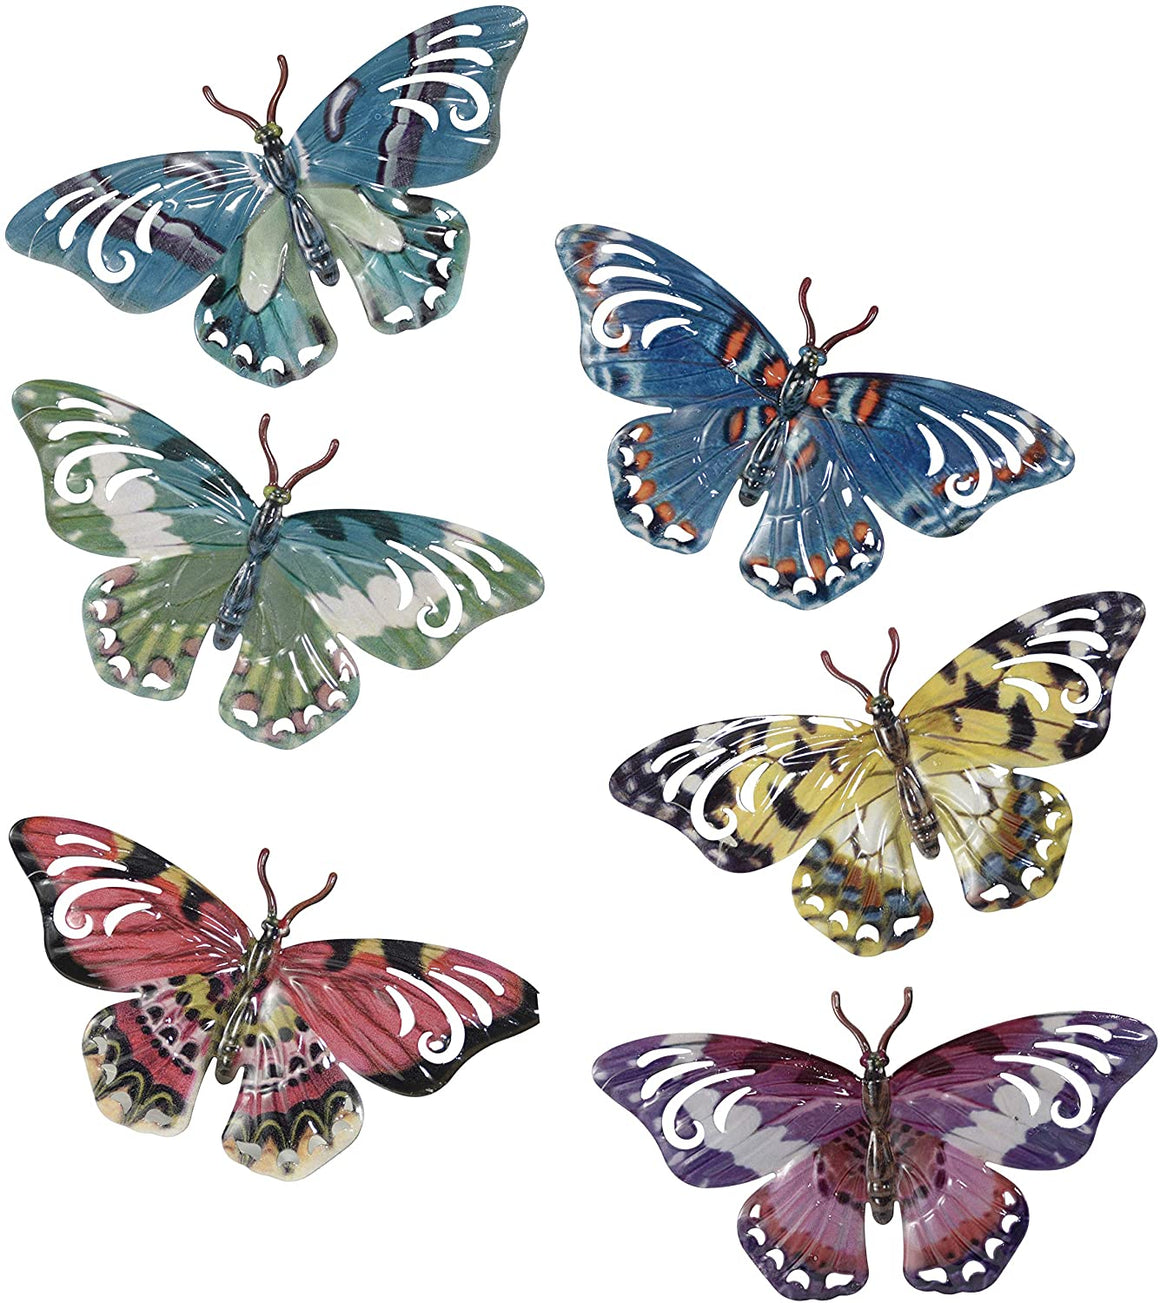 Set of 6 Metal Butterflies Hanging Wall Art, 7 Inches, 6 Designs in Colorful Enamel